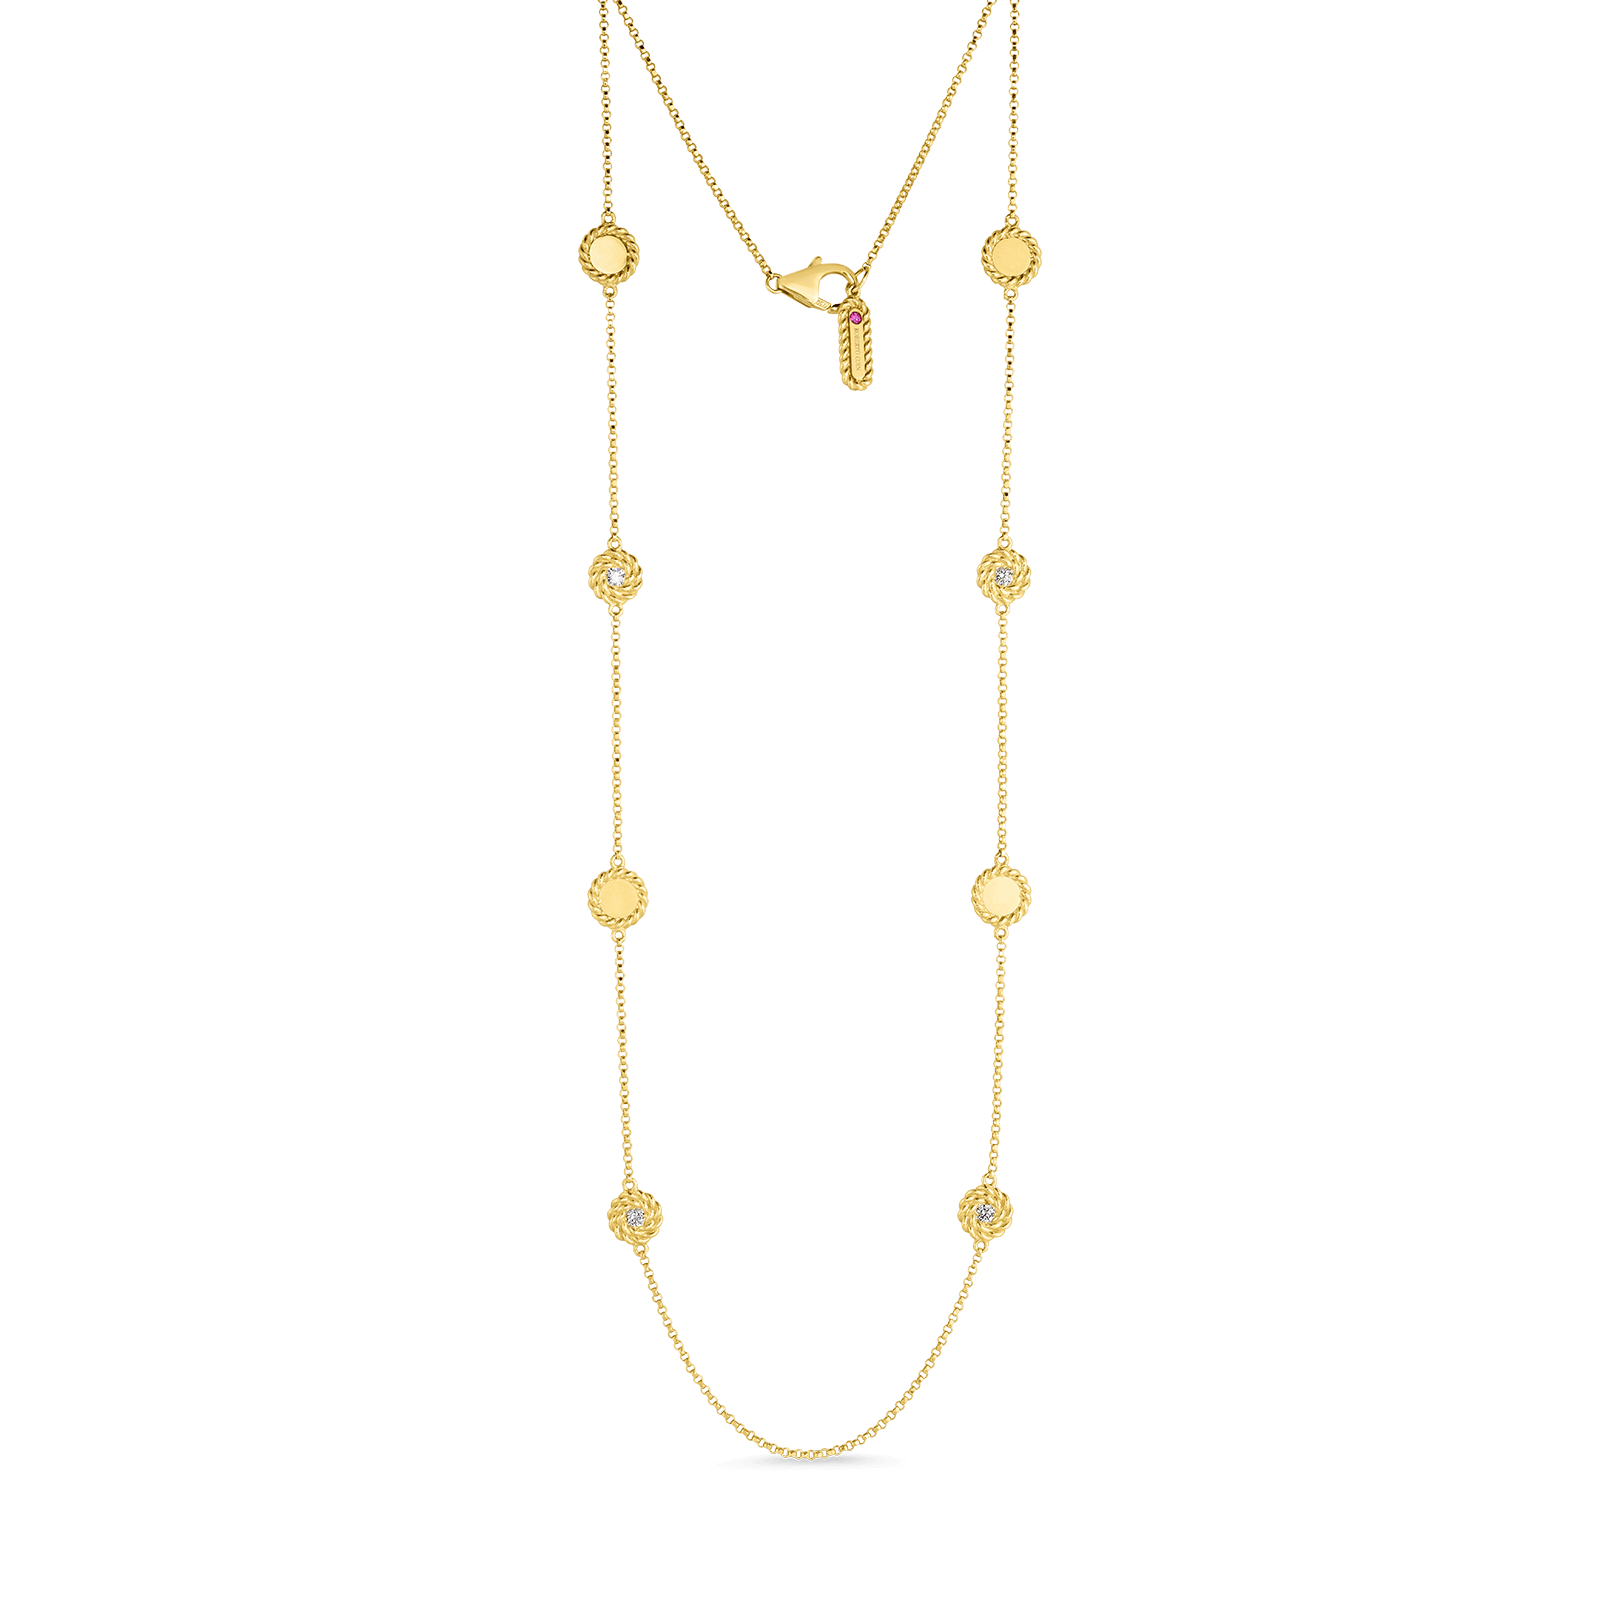 Roberto-Coin-18k-yellow-gold-Necklace with Alternating Diamond Stations-7771315AY35Xalt